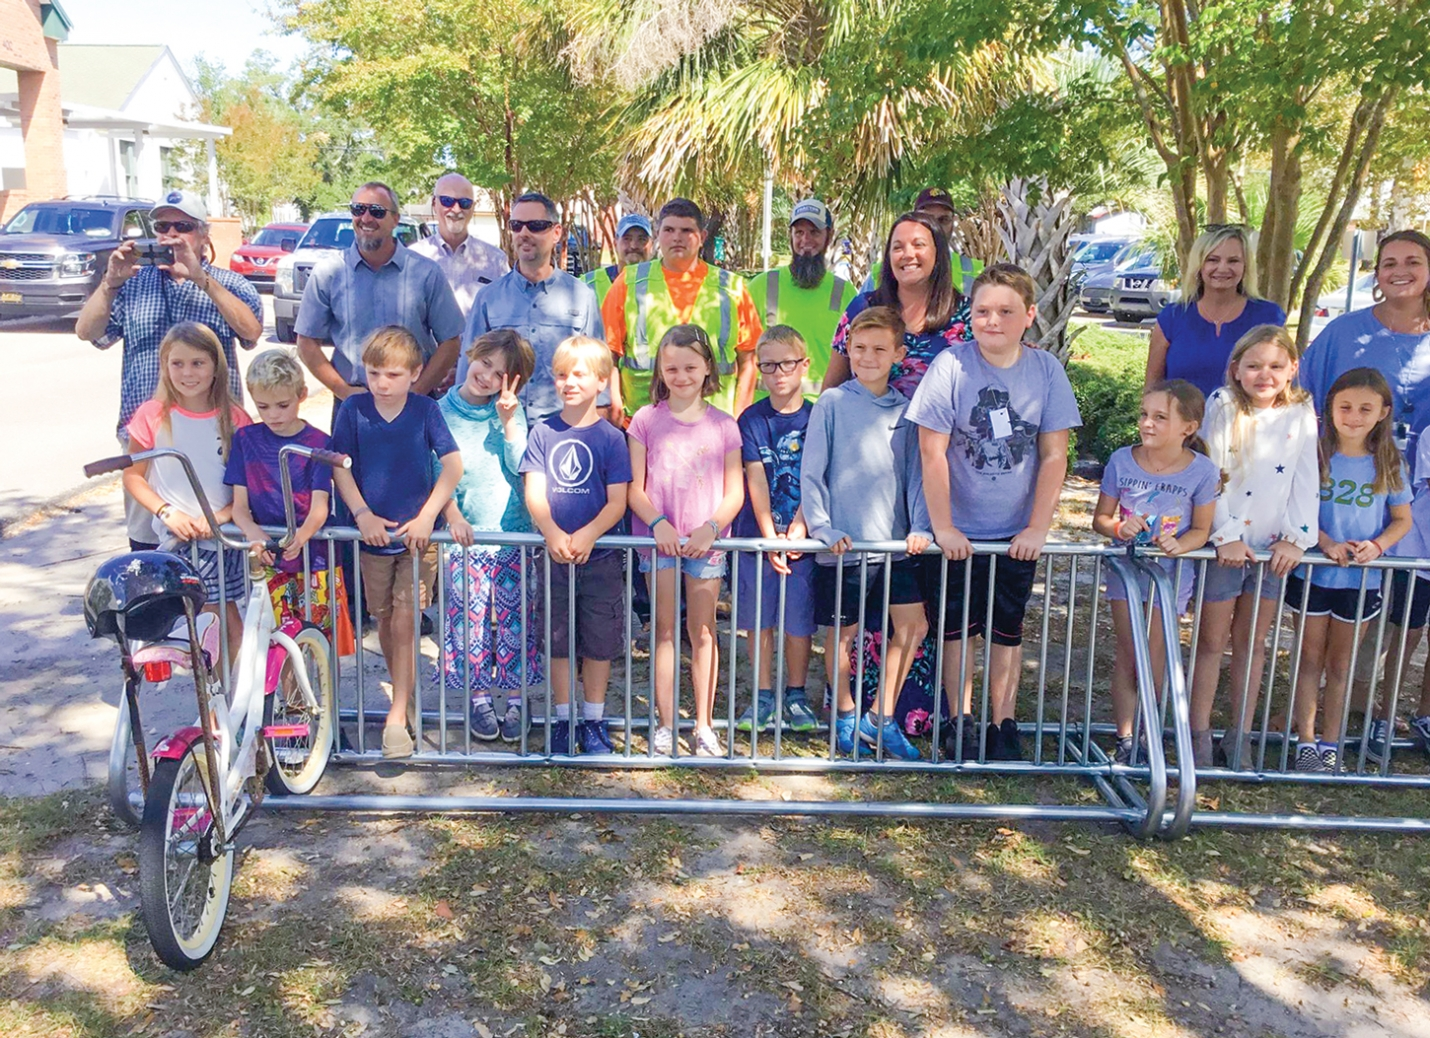 The Town of Carolina Beach purchased 32 bike racks to place at public areas throughout Town. The first two were delivered to the Carolina Beach Elementary School on Tuesday September 24th.